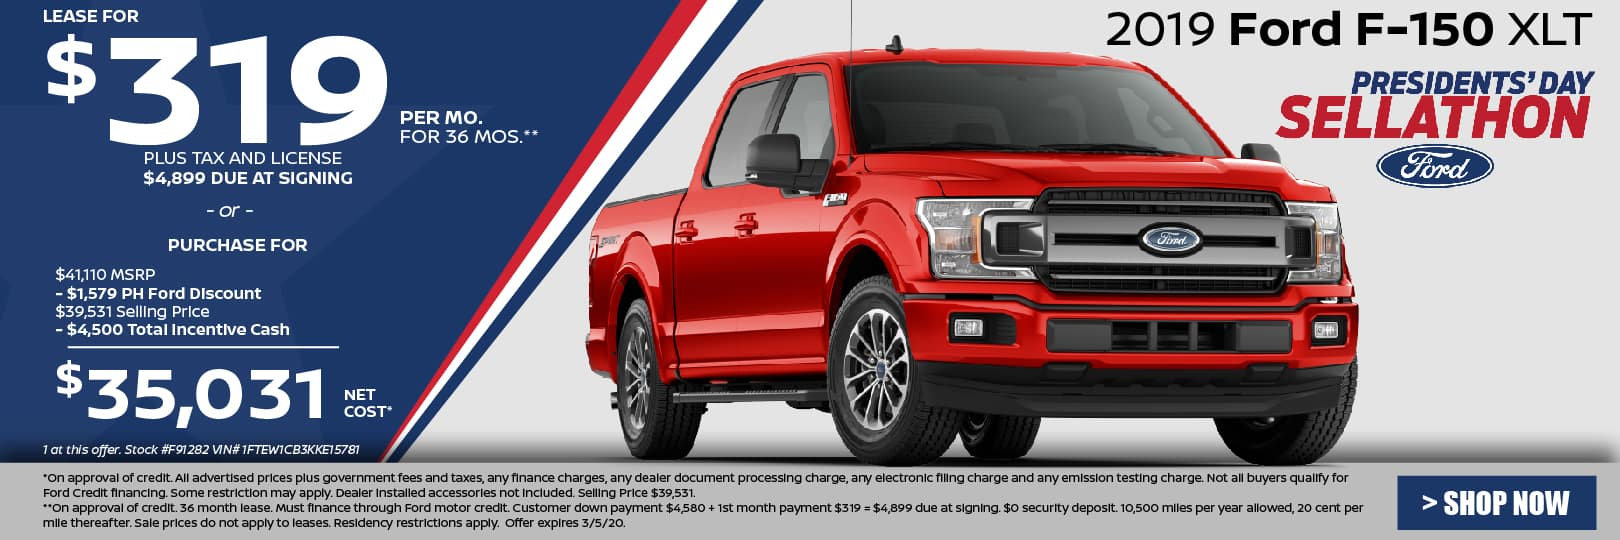 Ford F-150 offer